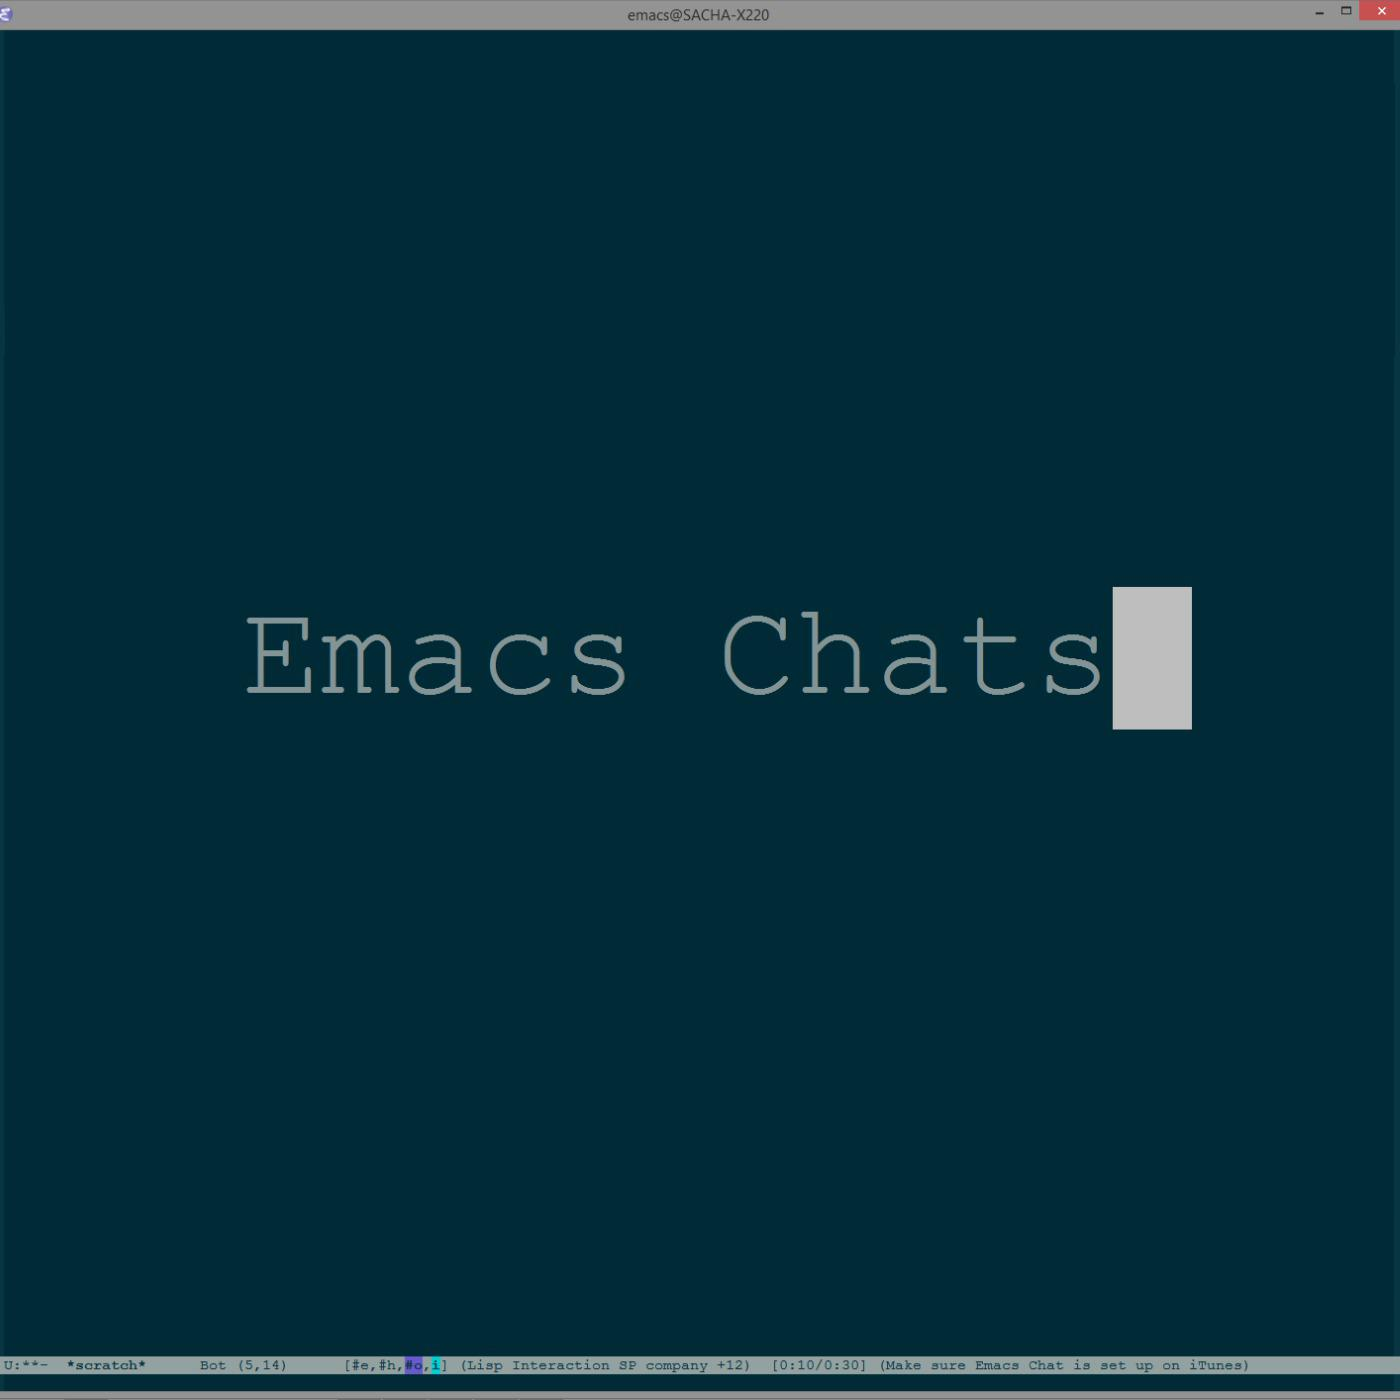 2015-12-10 Emacs Chat: John Wiegley on maintaining Emacs and